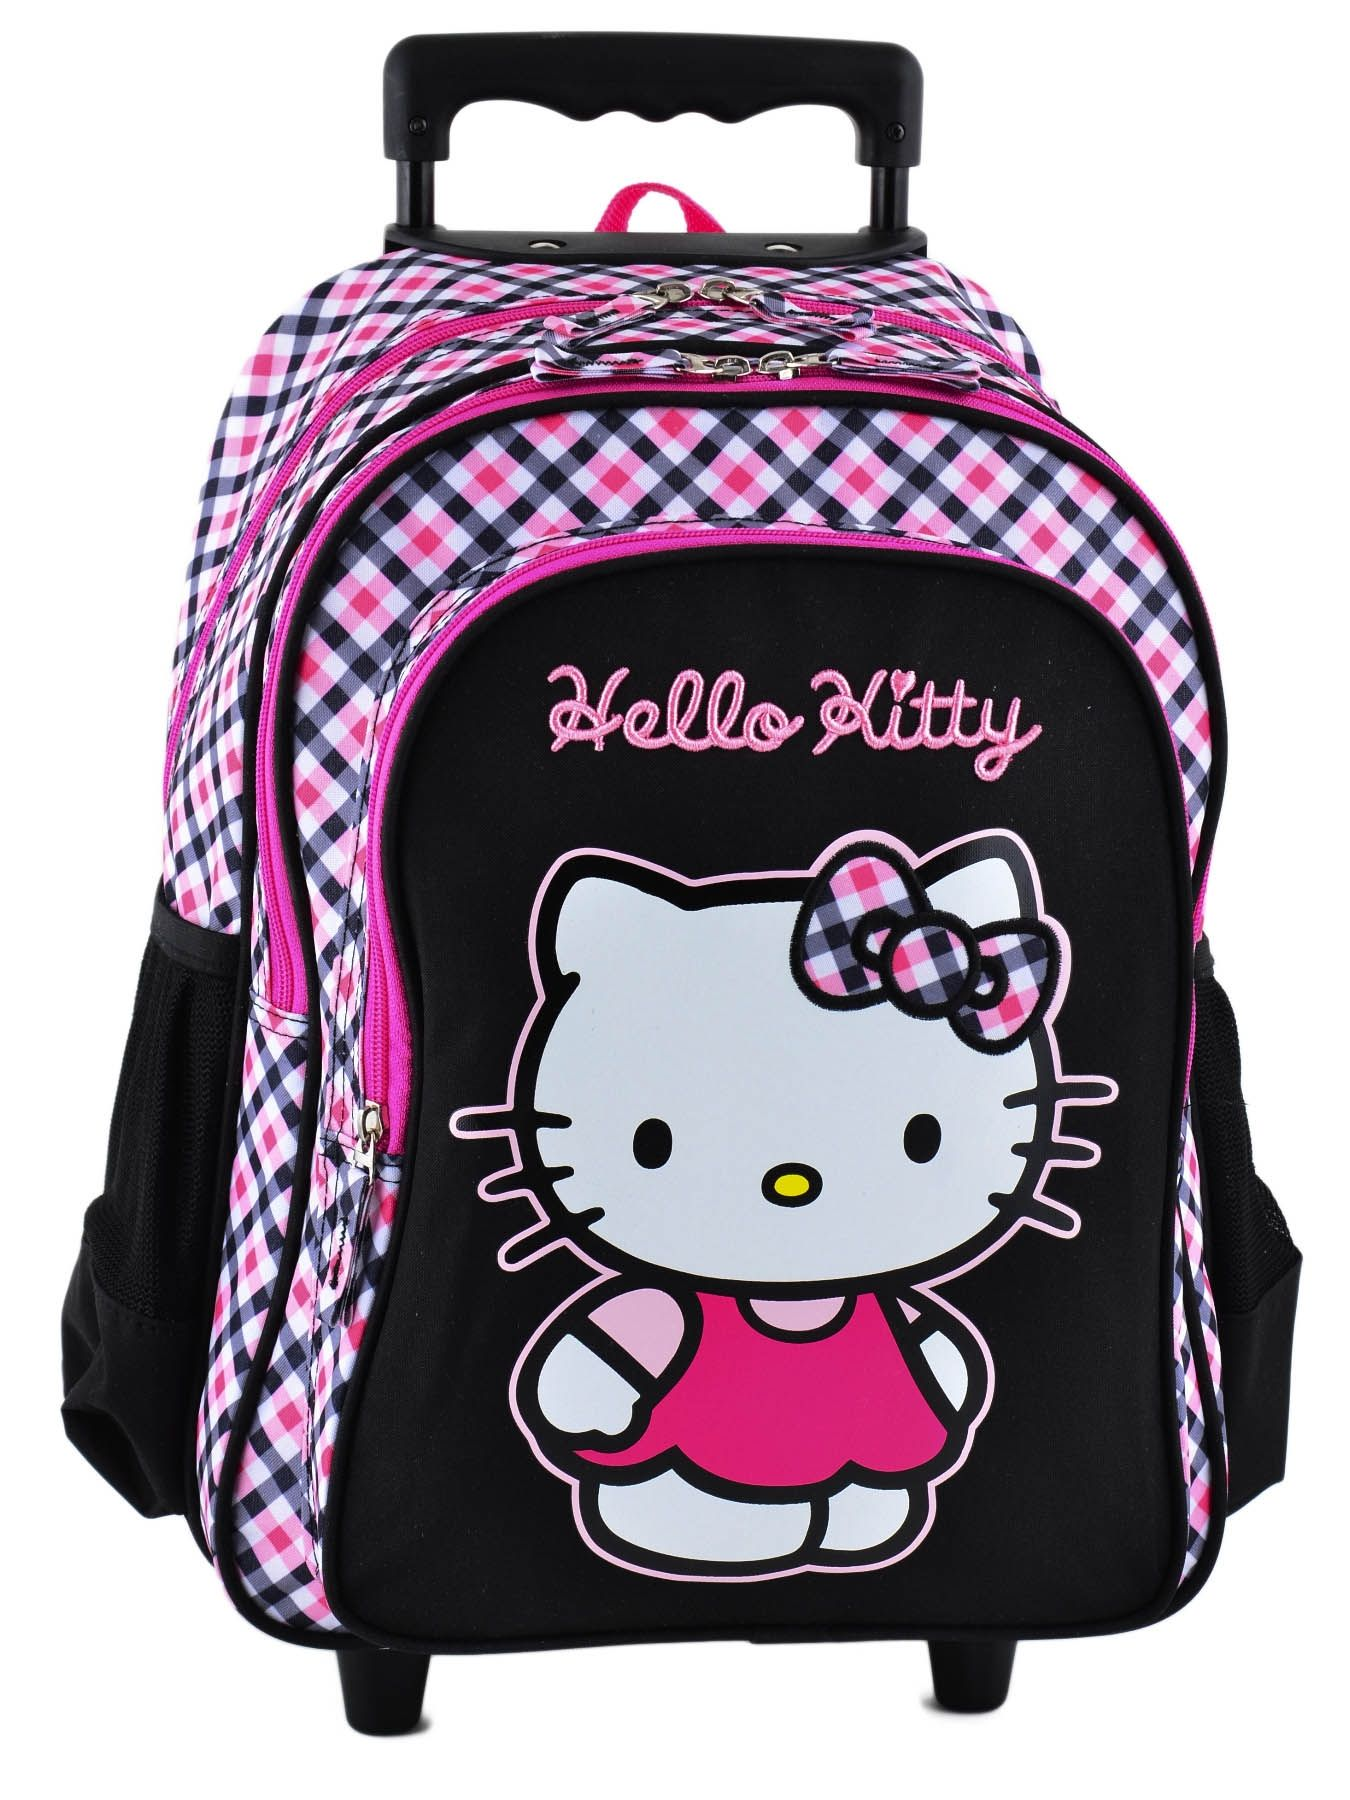 sac a dos roulettes hello kitty multicolor i college 15khk34. Black Bedroom Furniture Sets. Home Design Ideas